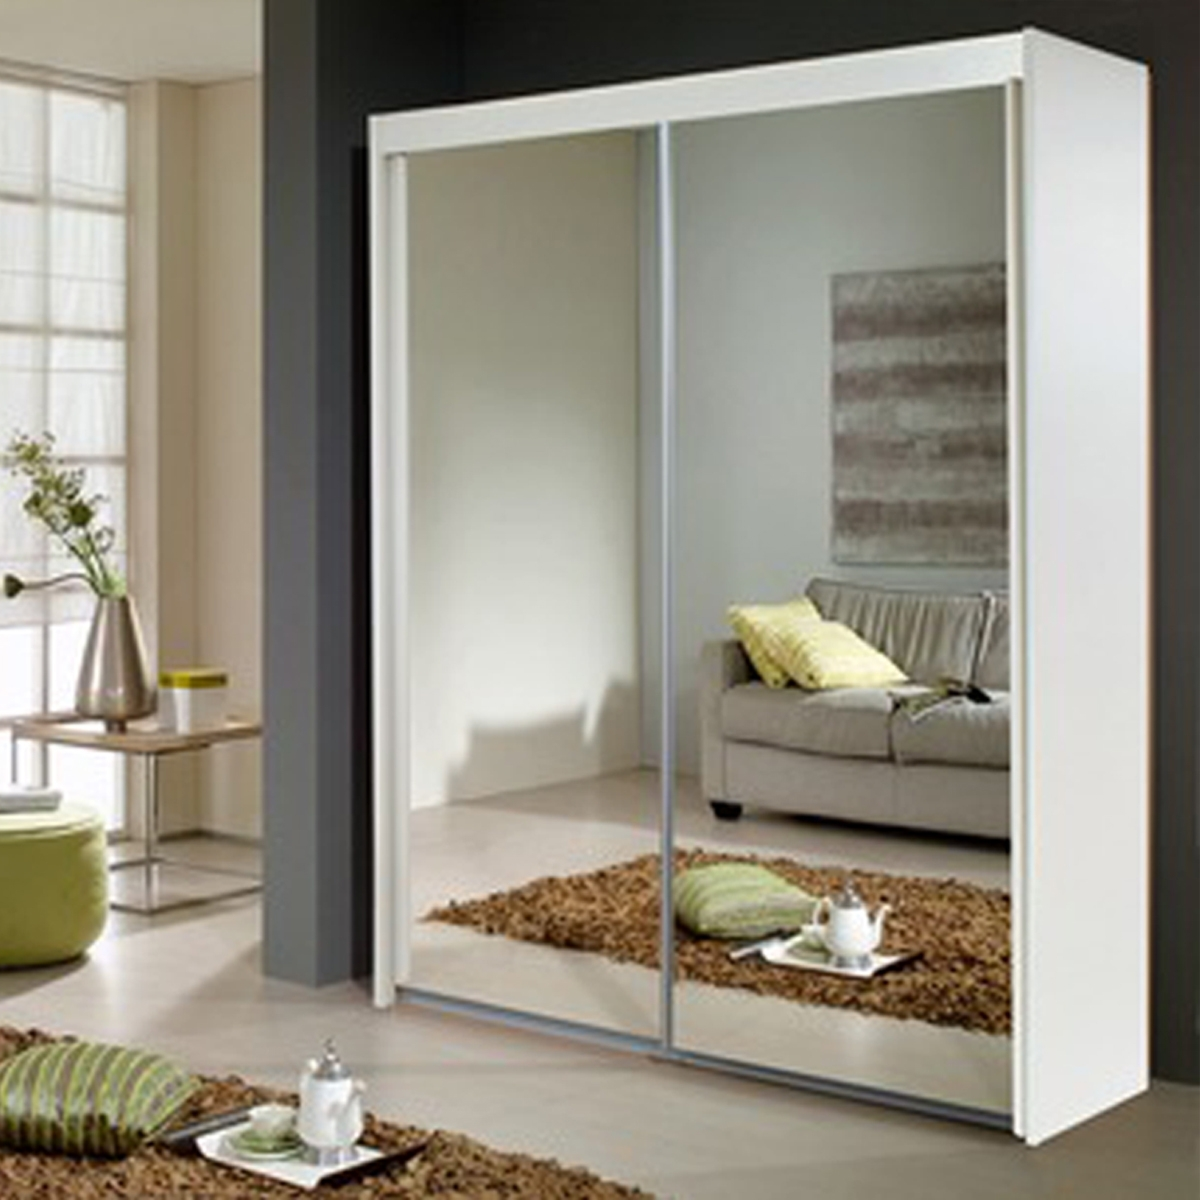 Mirror Wardrobes Intended For Well Liked Sliding Door Mirrored Wardrobe From The House Of Reeves Croydon (View 11 of 15)